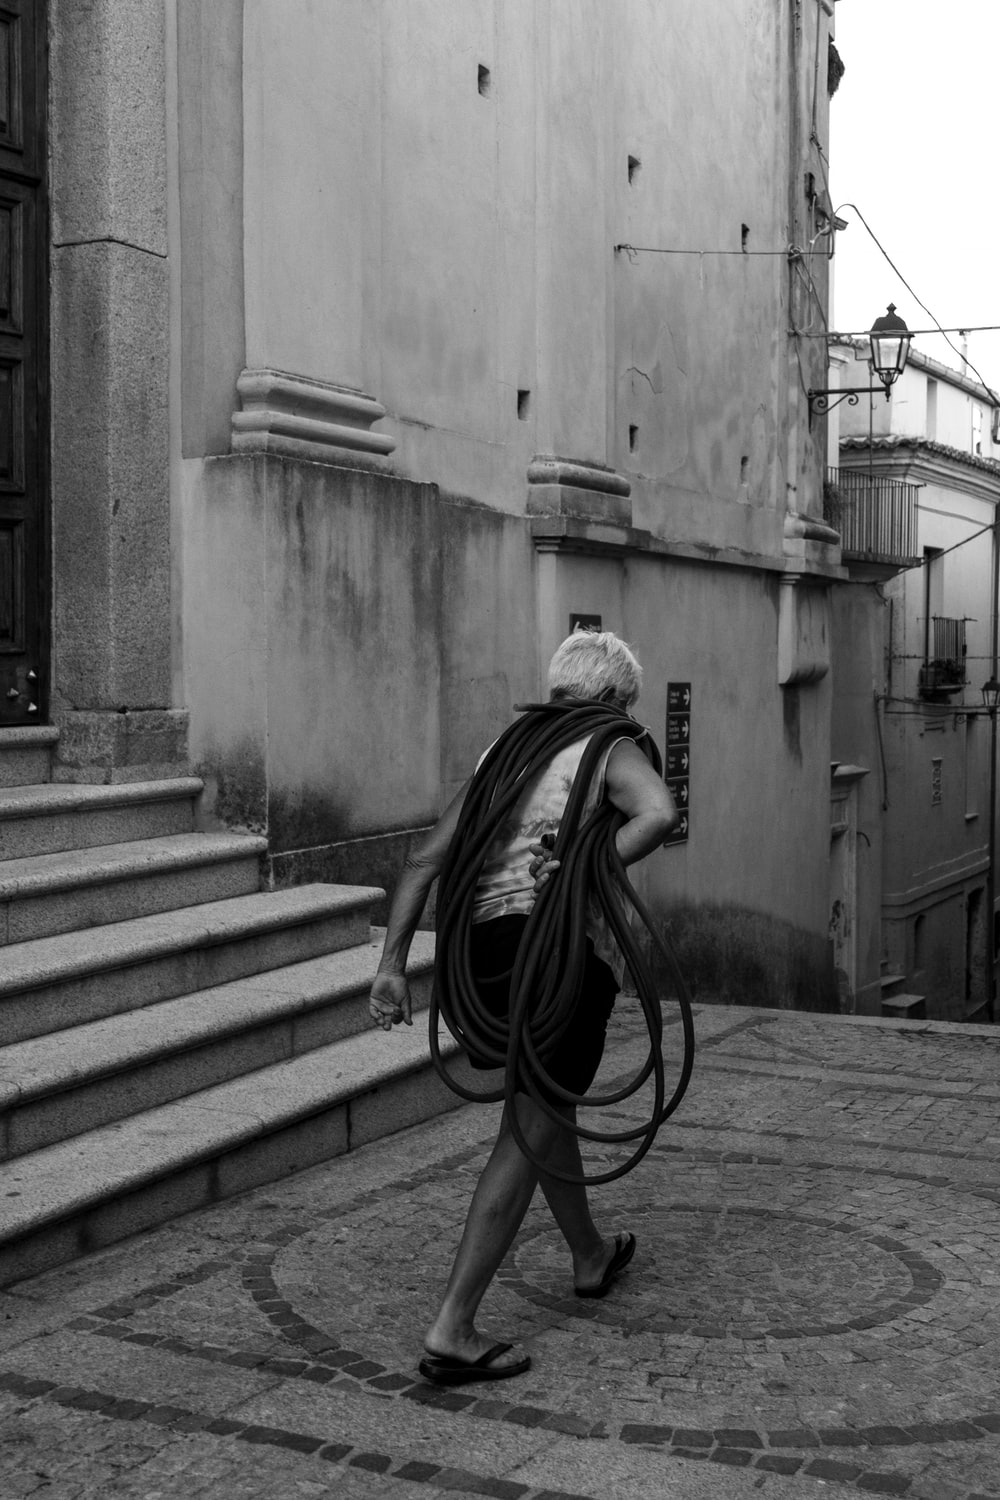 woman carrying rope walking near stairs